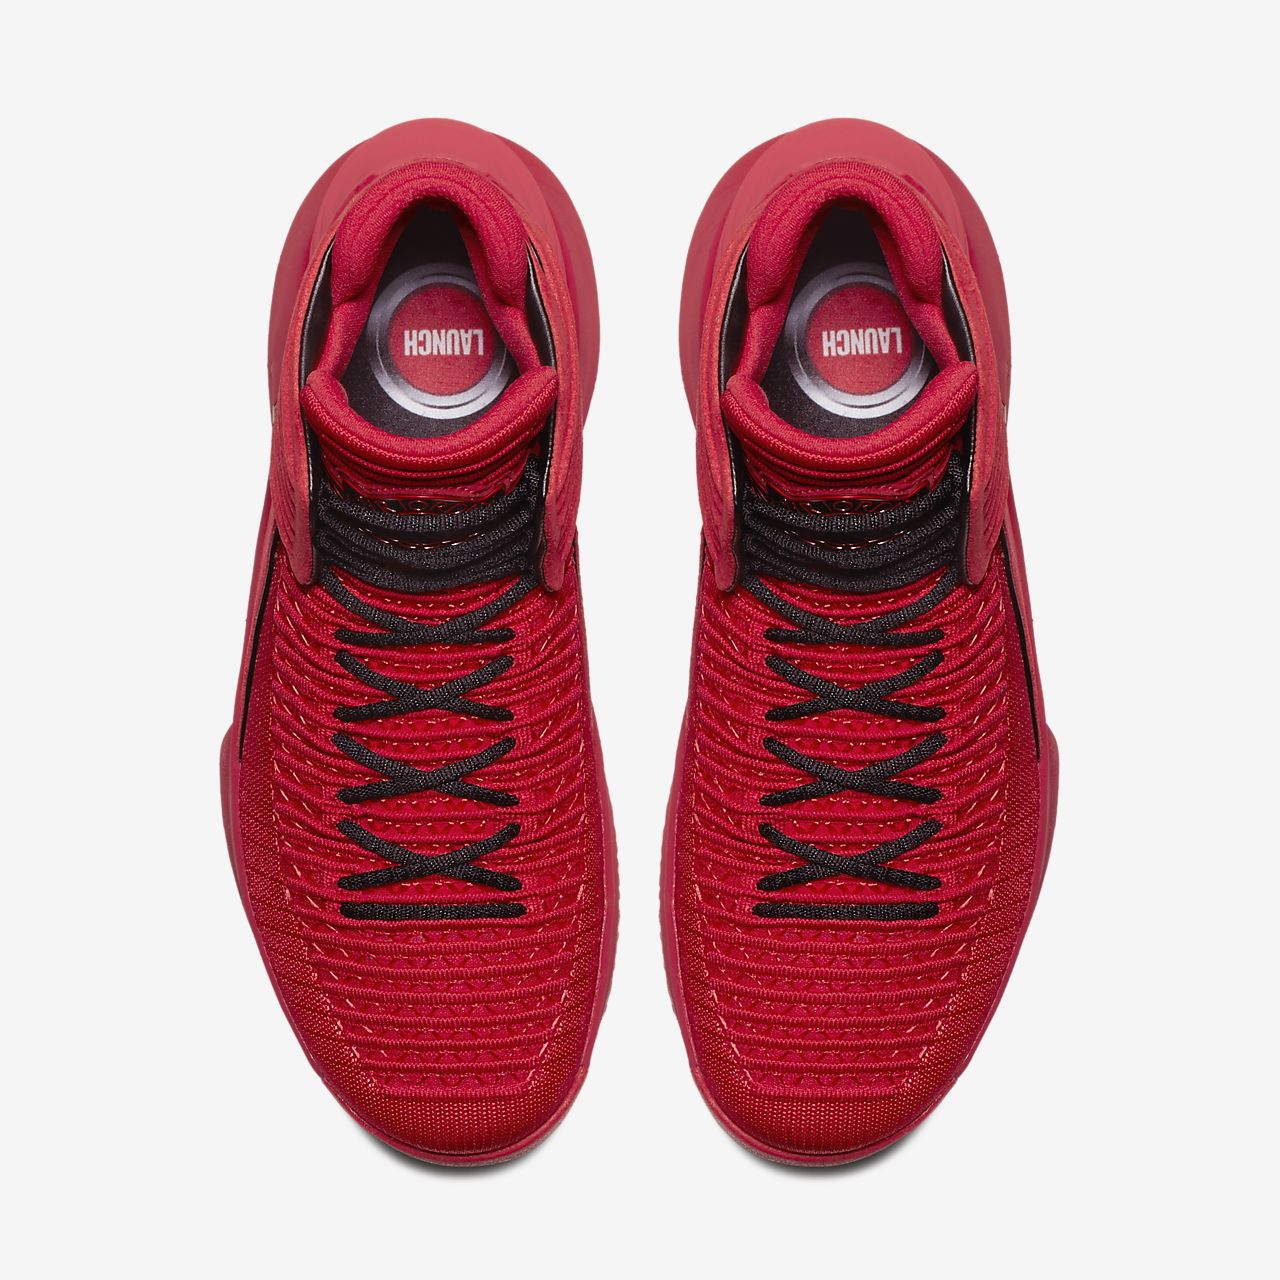 7b8a2d63547ed ... new zealand air jordan xxxii rosso corsa mens basketball shoe e7b3e  ae246